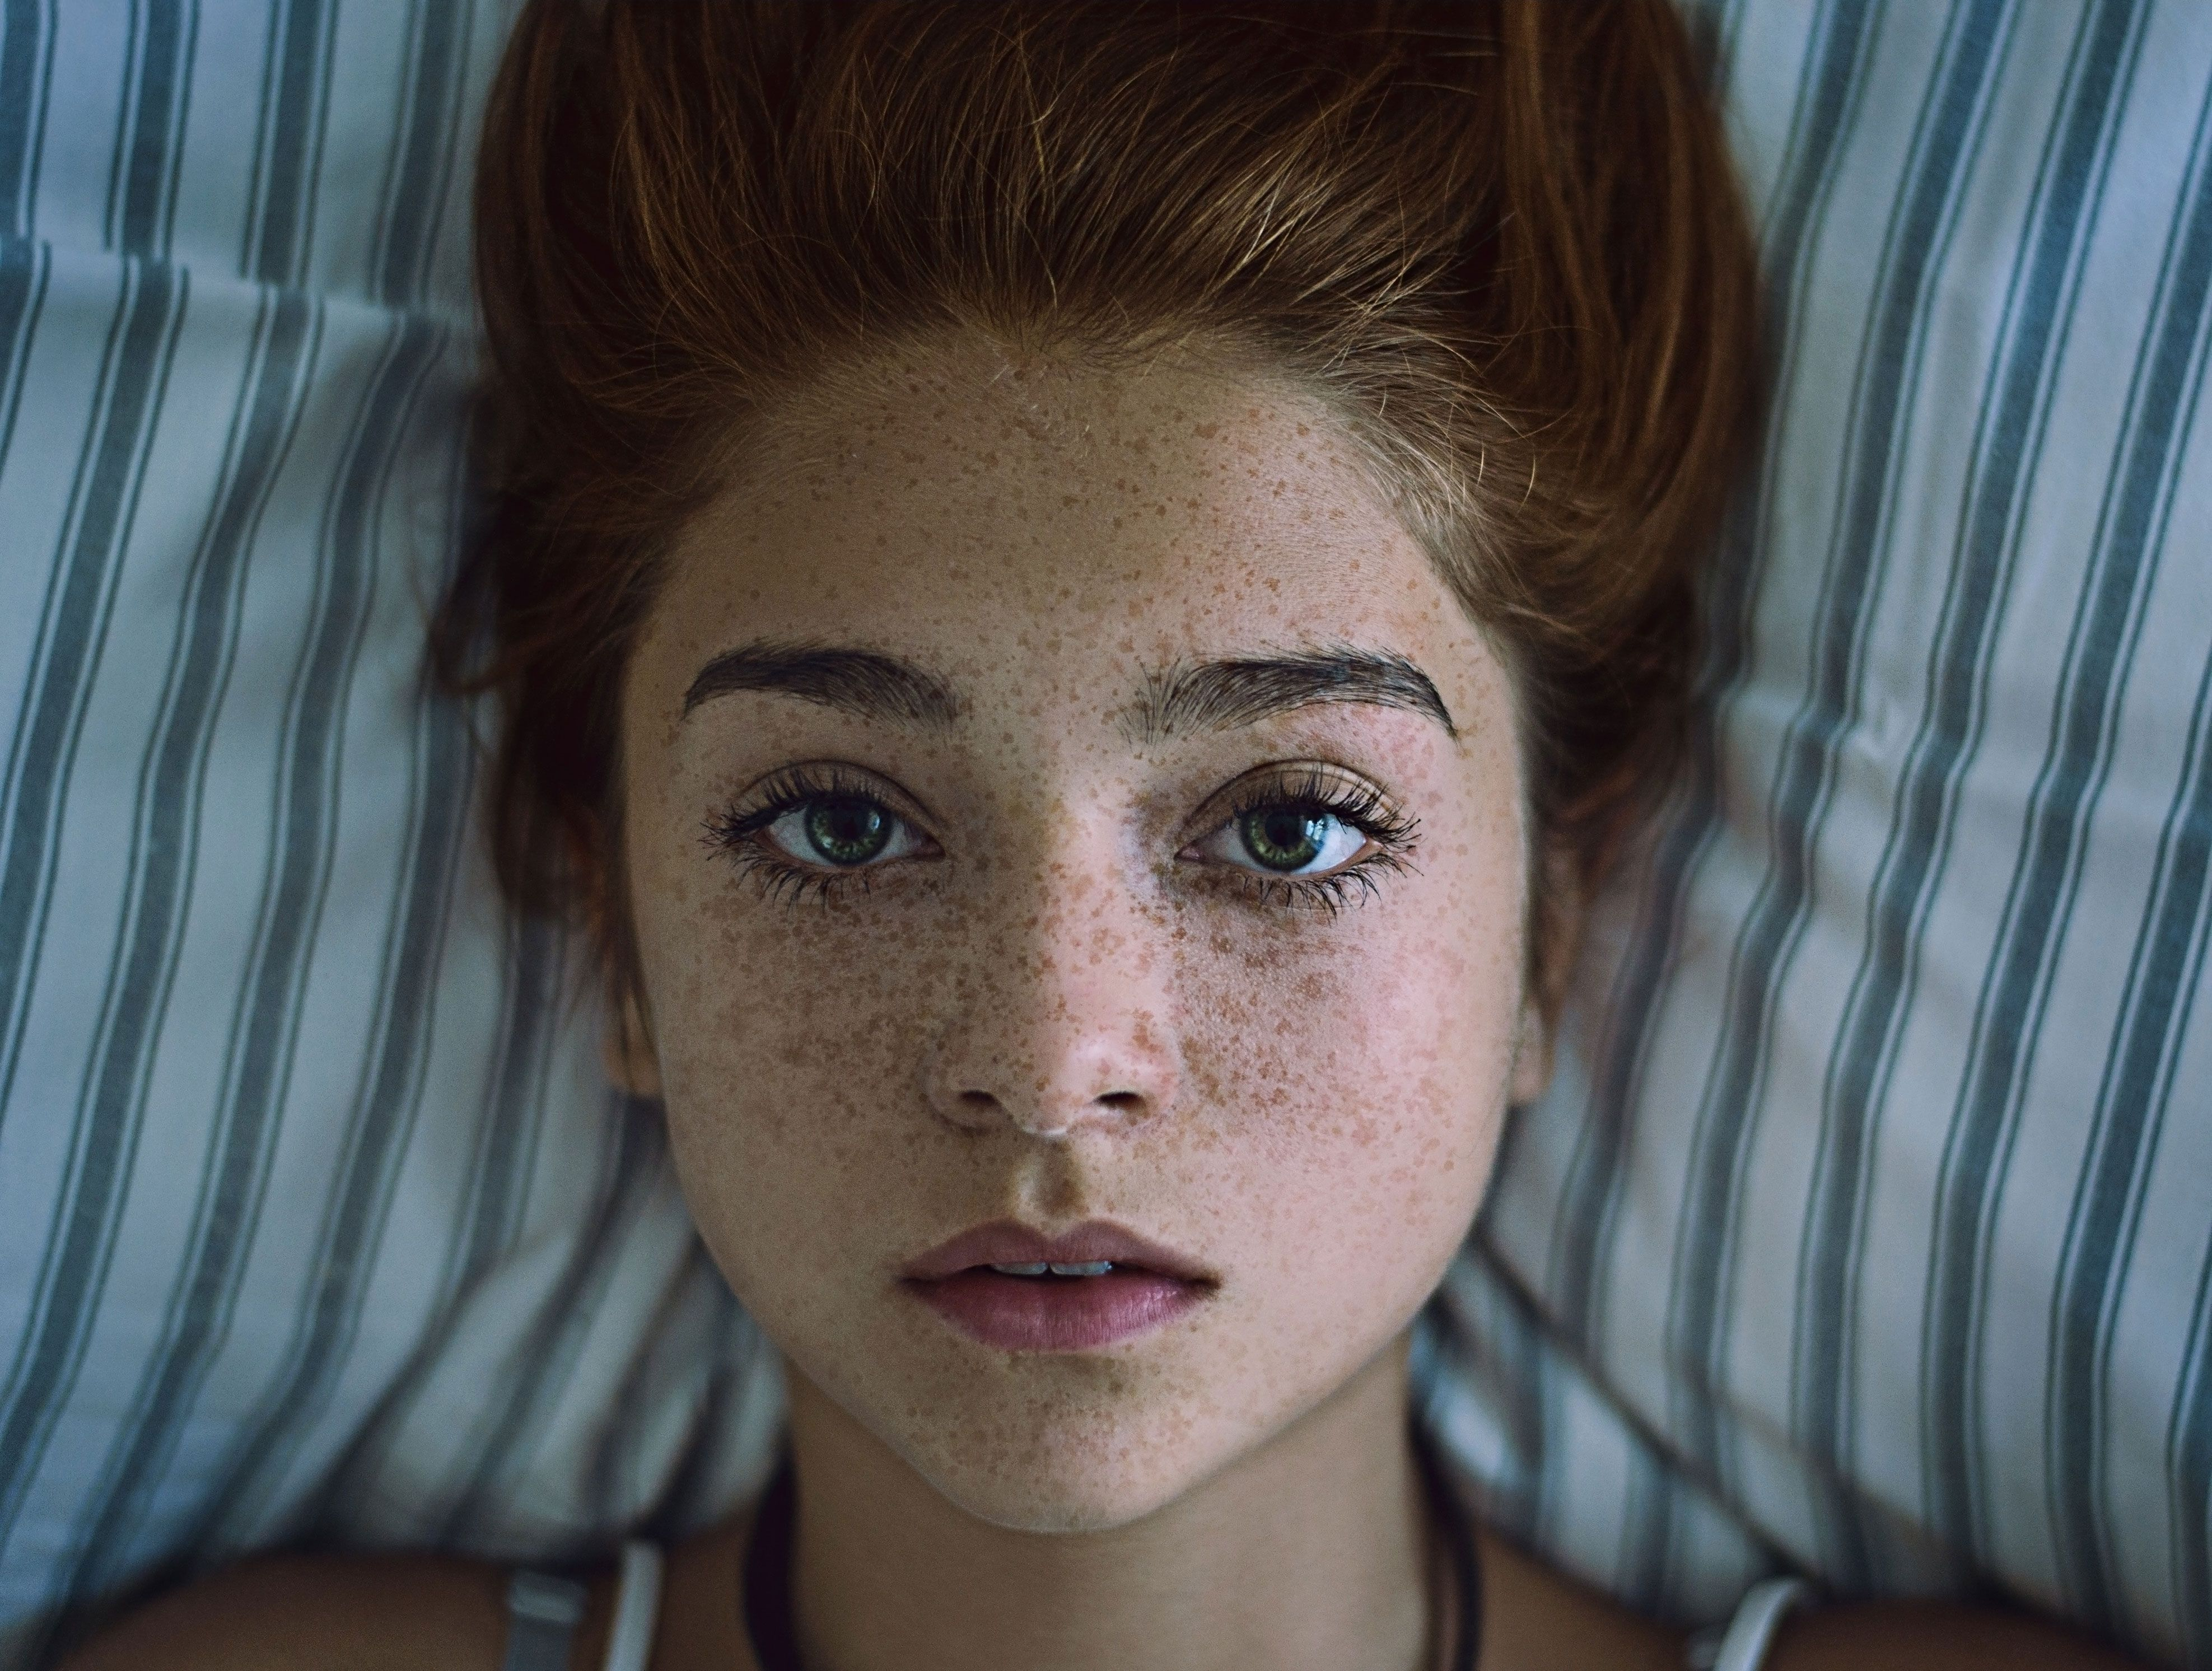 Beautiful Portrait Of A Girl With Freckles Lying Down On A -3245